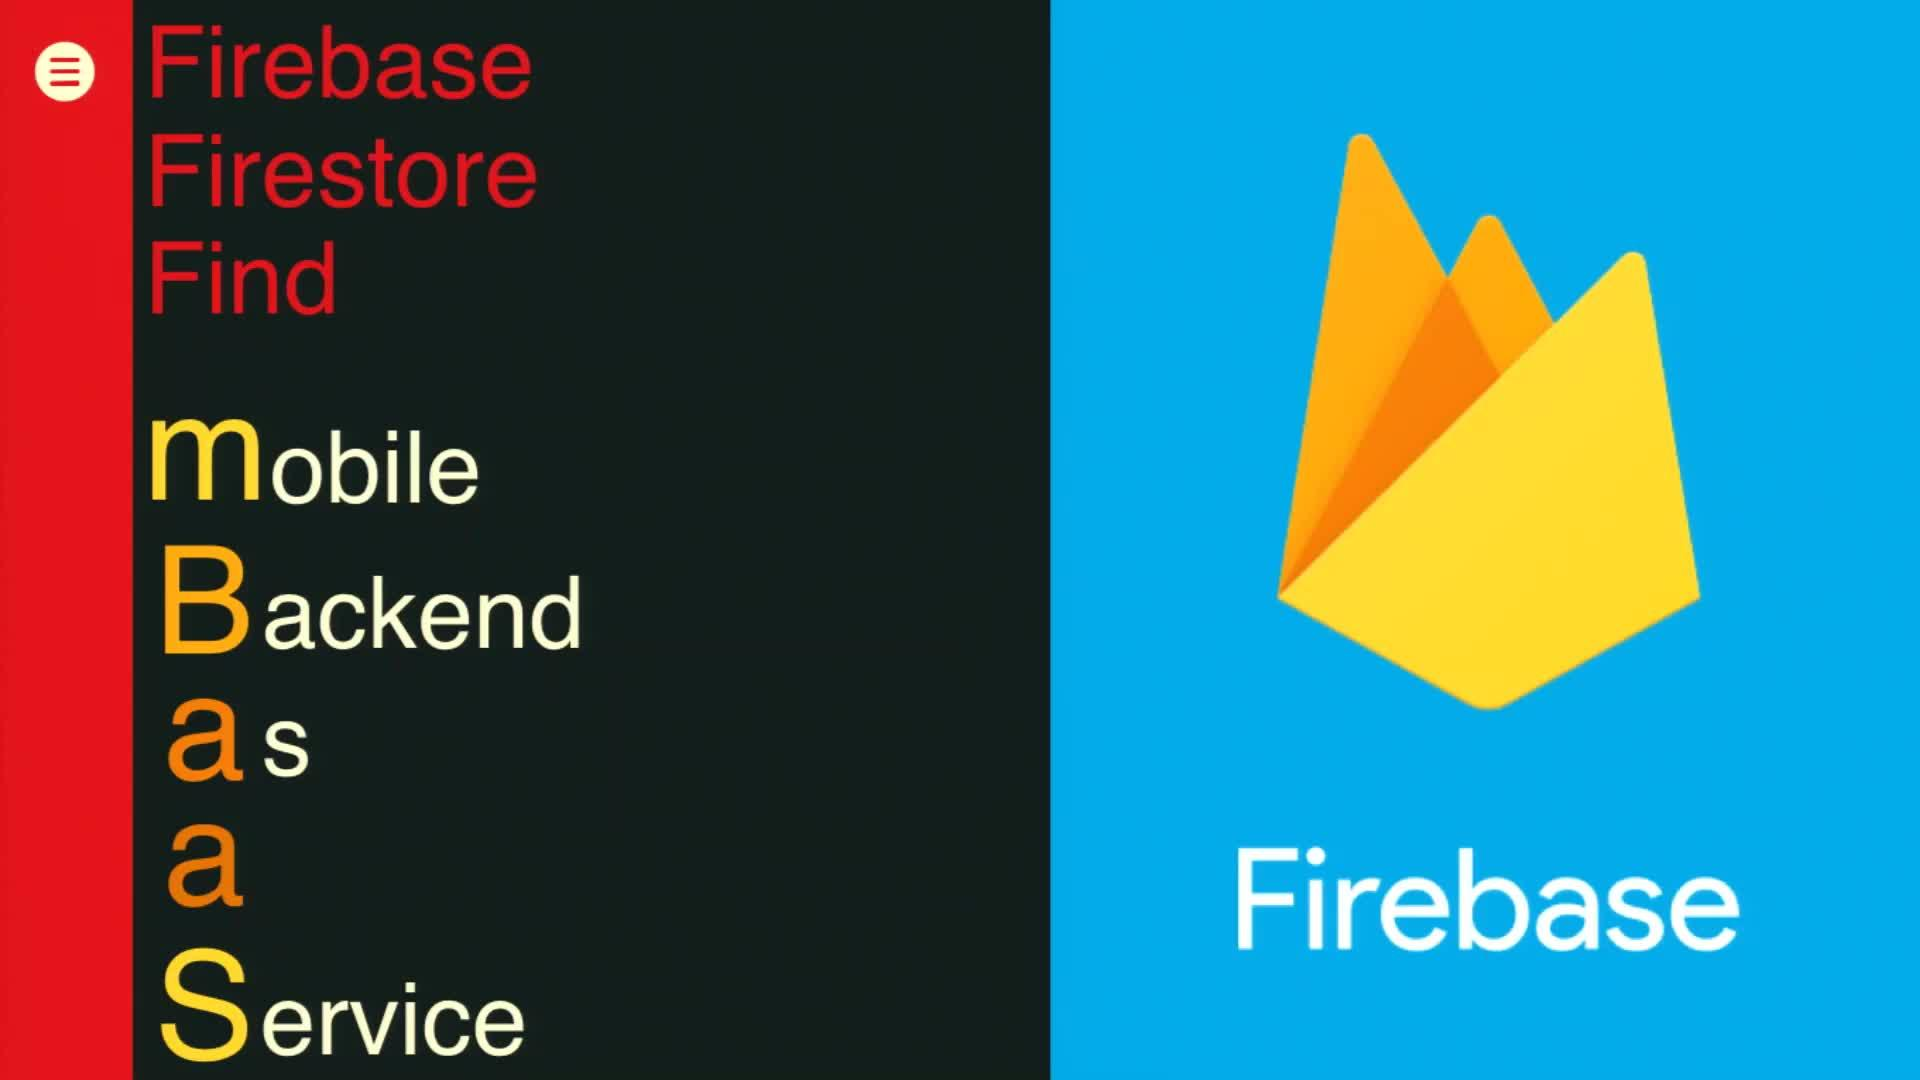 Firebase/Firestoreから覗くmobile backendのサーバーレス